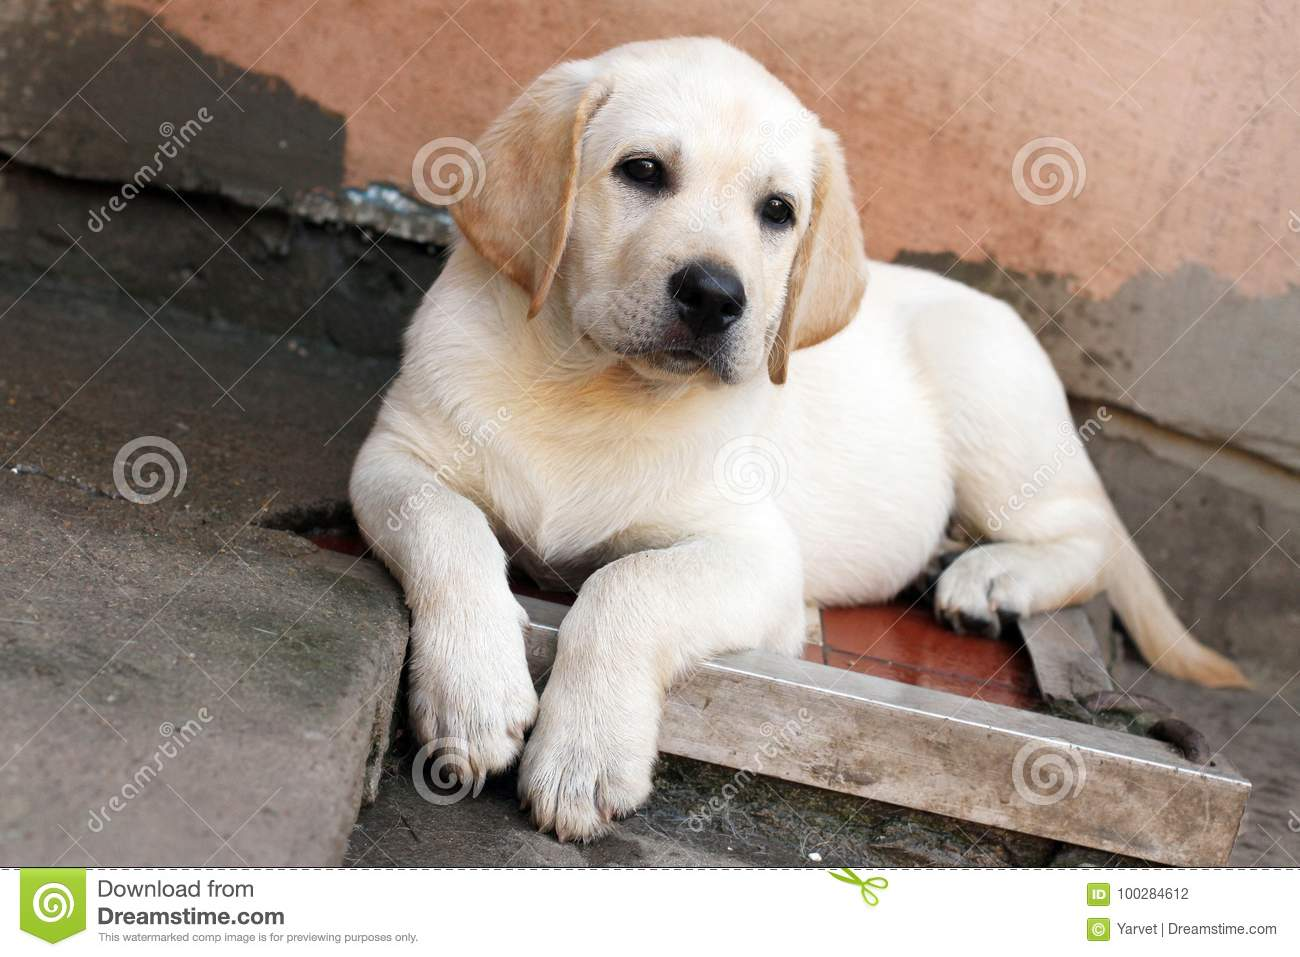 The little labrador puppy in the yard